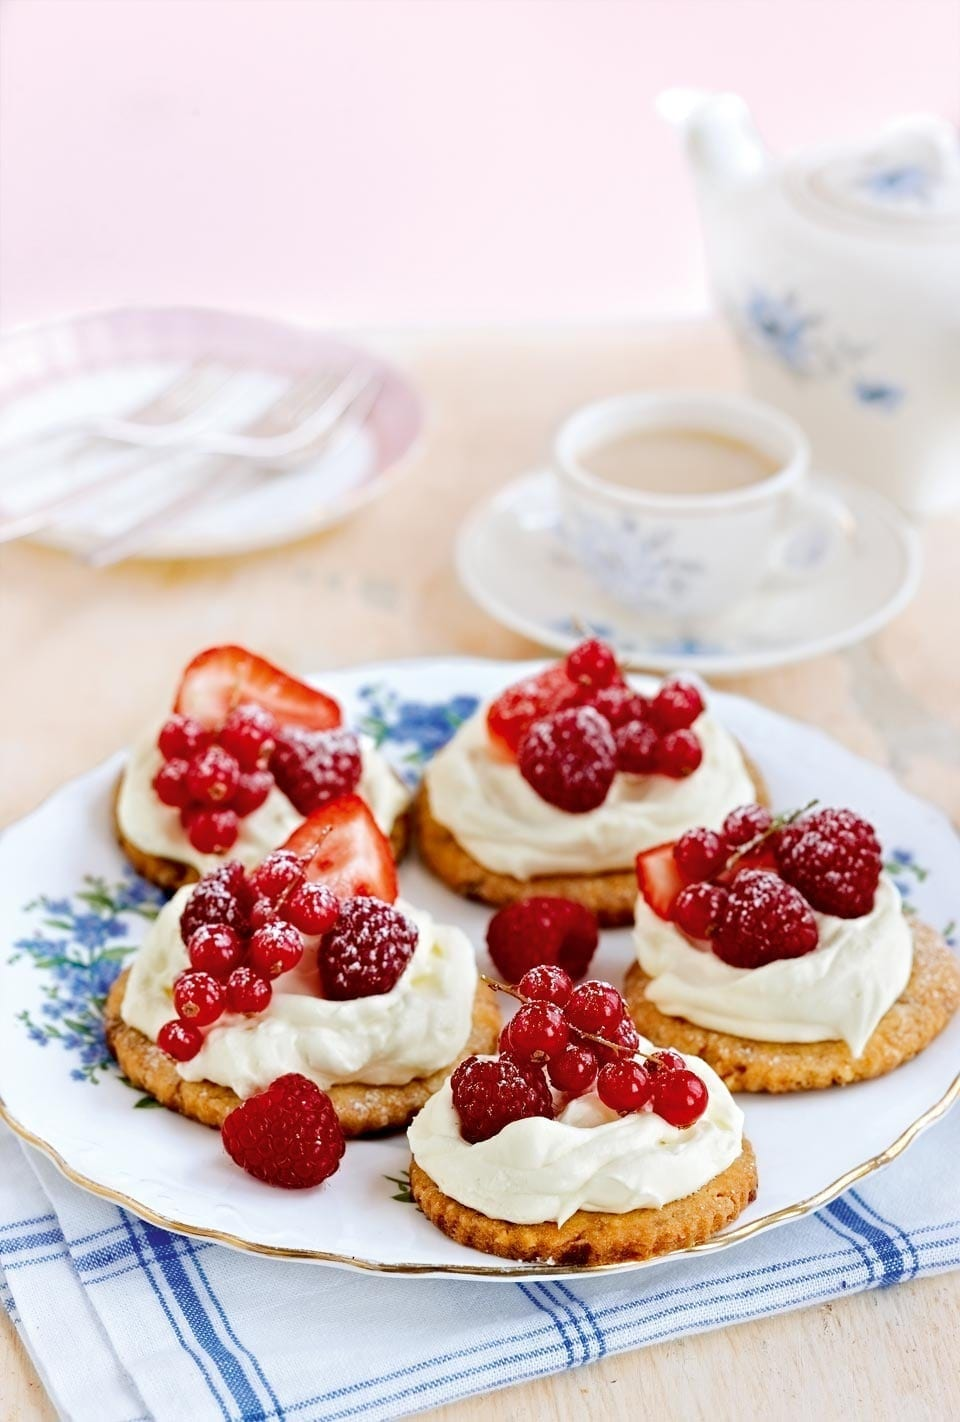 Marzipan And Mascarpone Cake With Summer Fruit Delicious